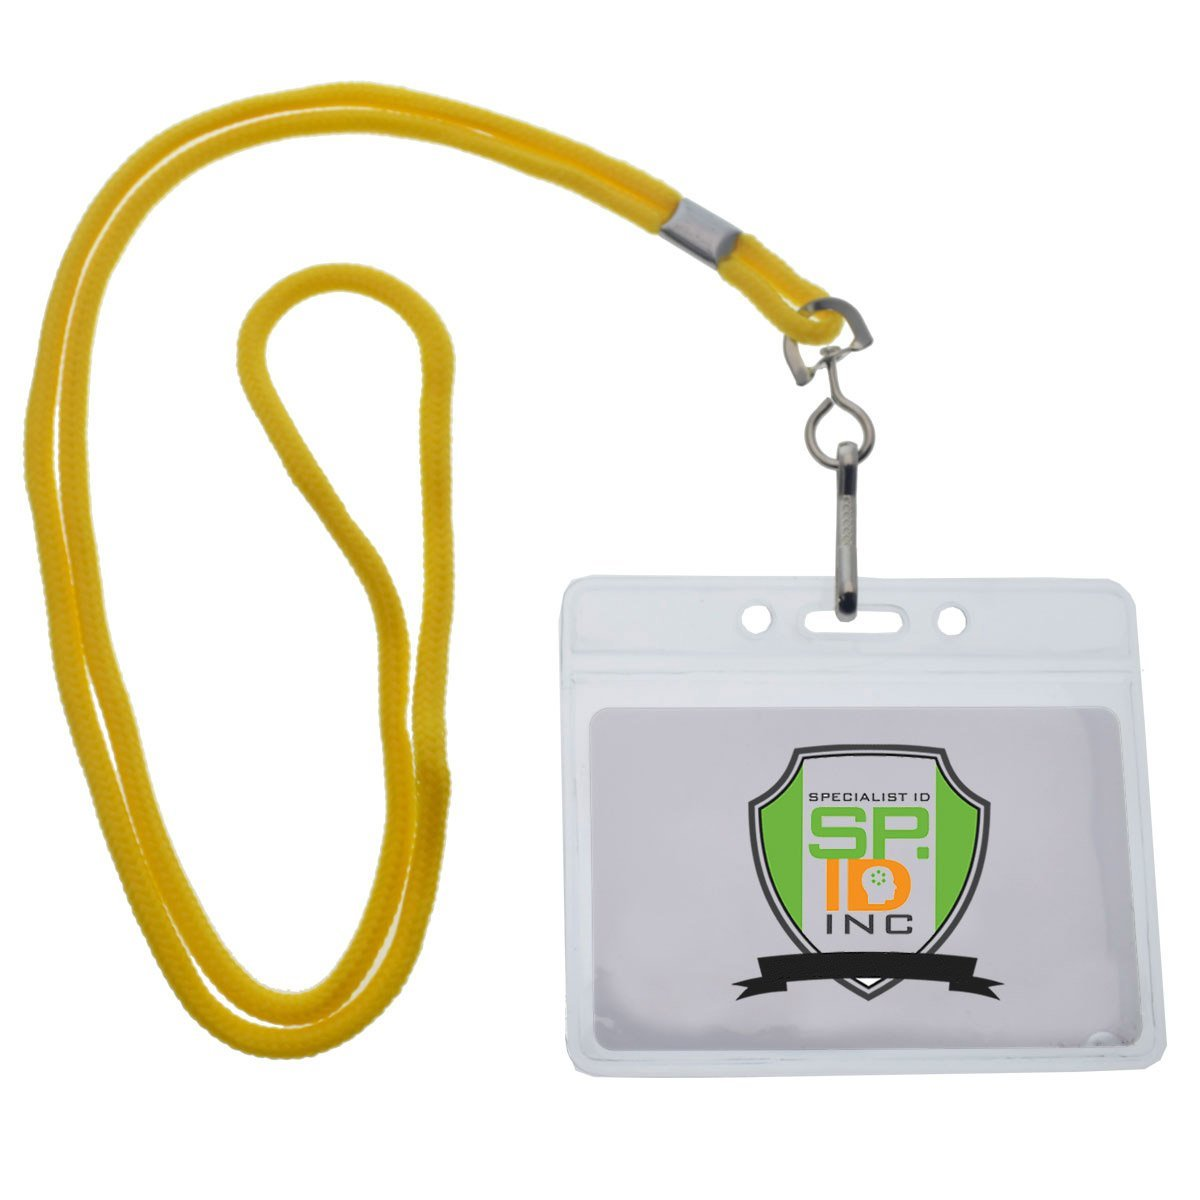 Premium Vertical ID Name Badge Holders with Lanyards by Specialist ID 25 Pack